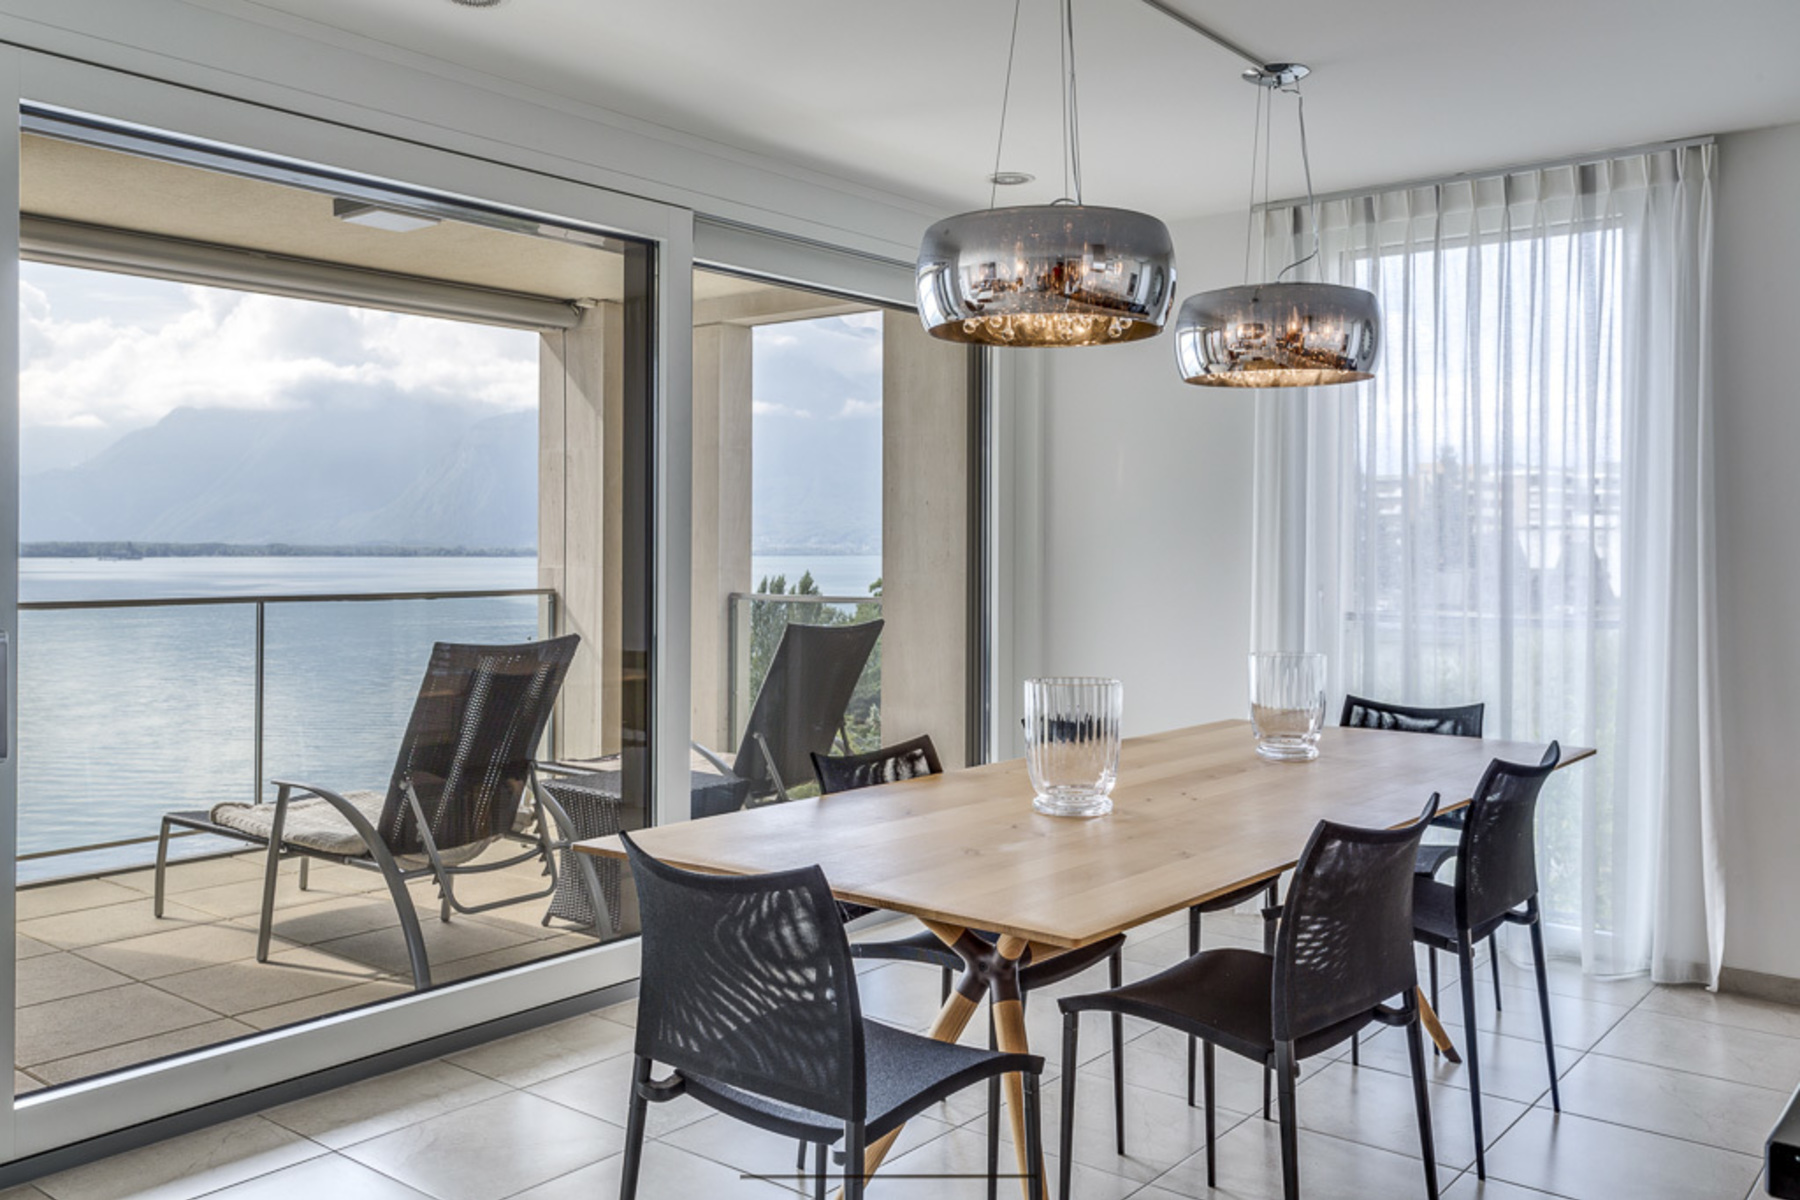 Additional photo for property listing at Luxury 3.5 room apartment in the Le National residential complex Montreux Montreux, Vaud 1820 Suisse